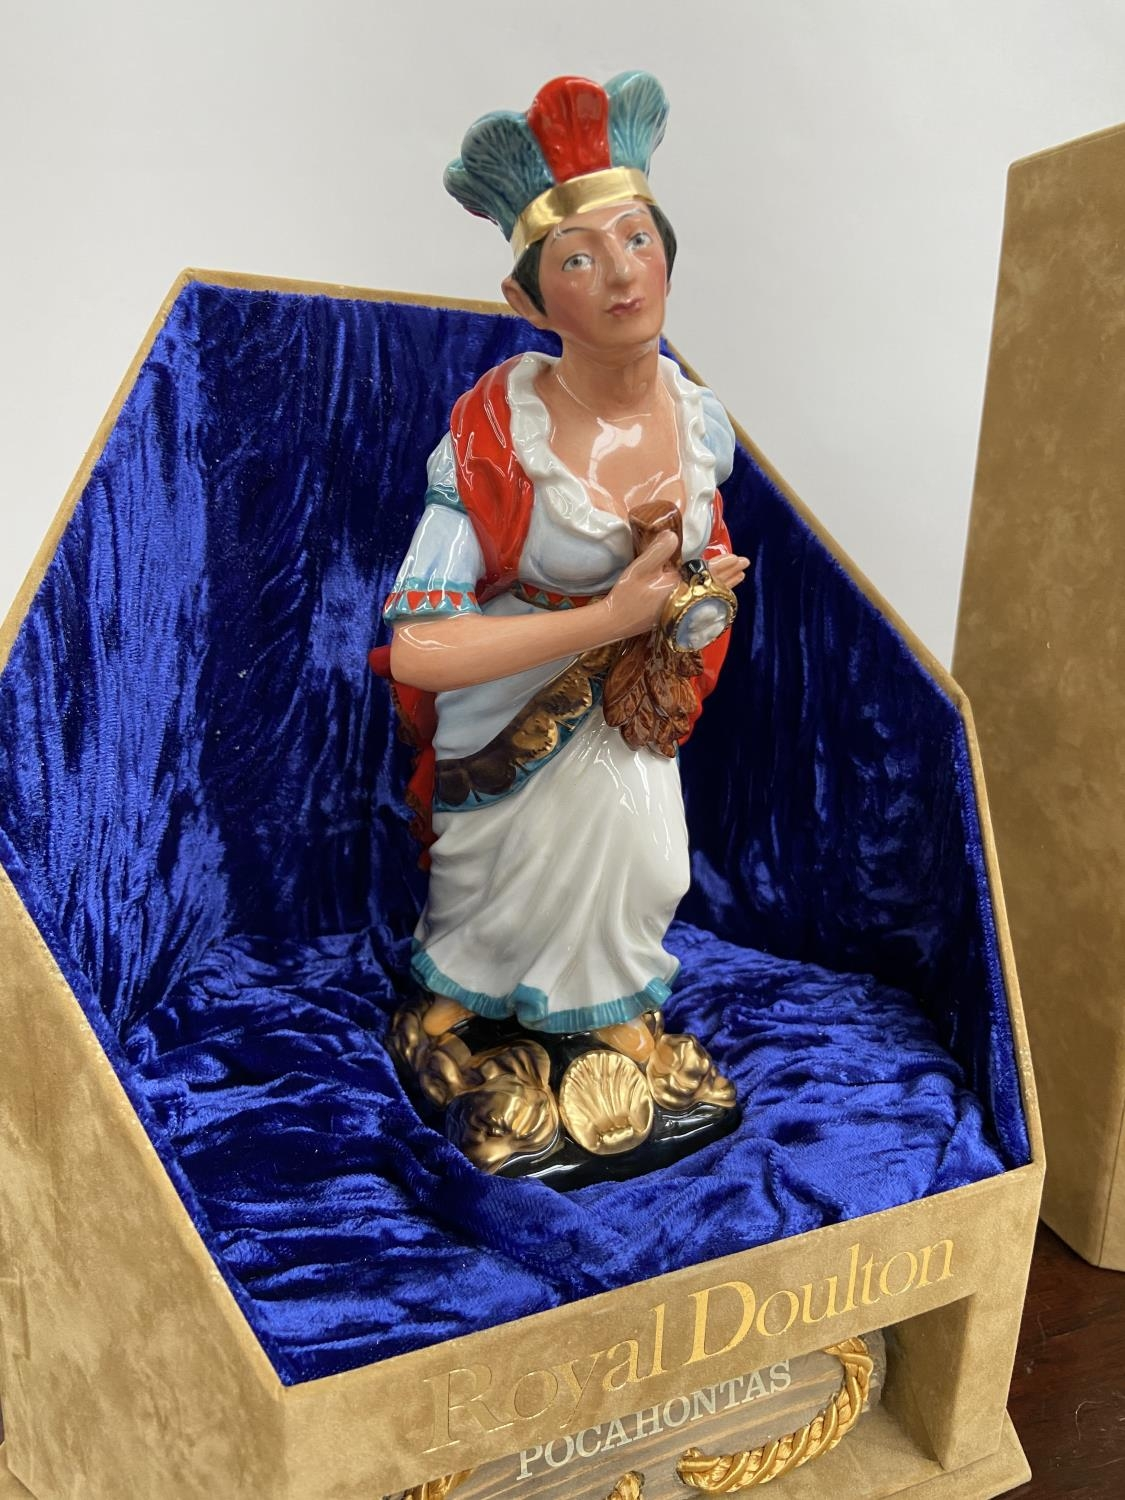 A Rare Royal Doulton Ships Figureheads bust titled 'Pocahontas' HN2930 [limited edition 69/950] - Image 2 of 7